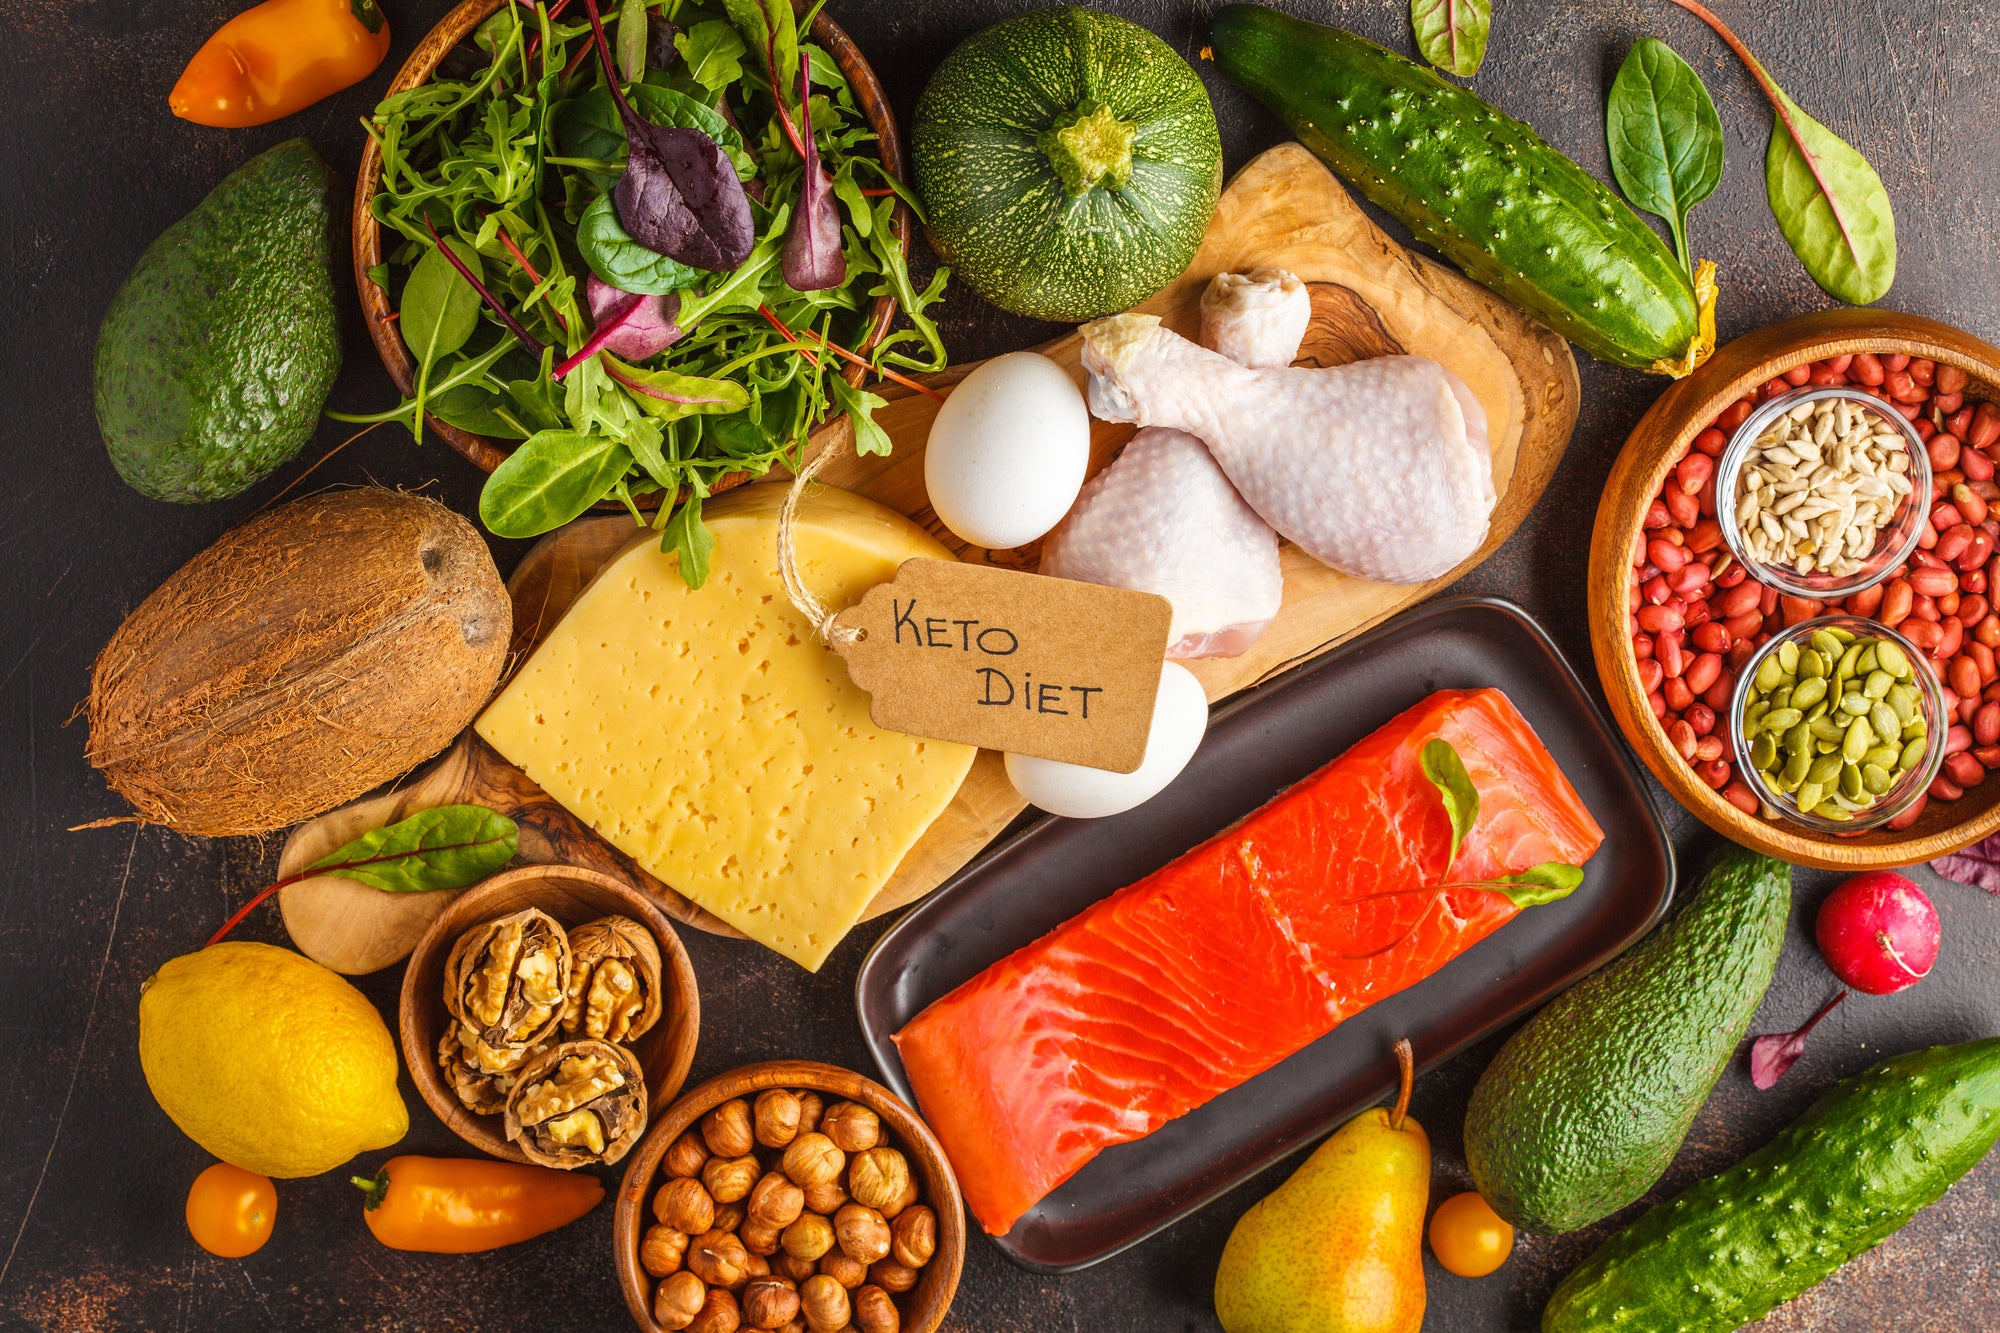 Keto diet is it good for you